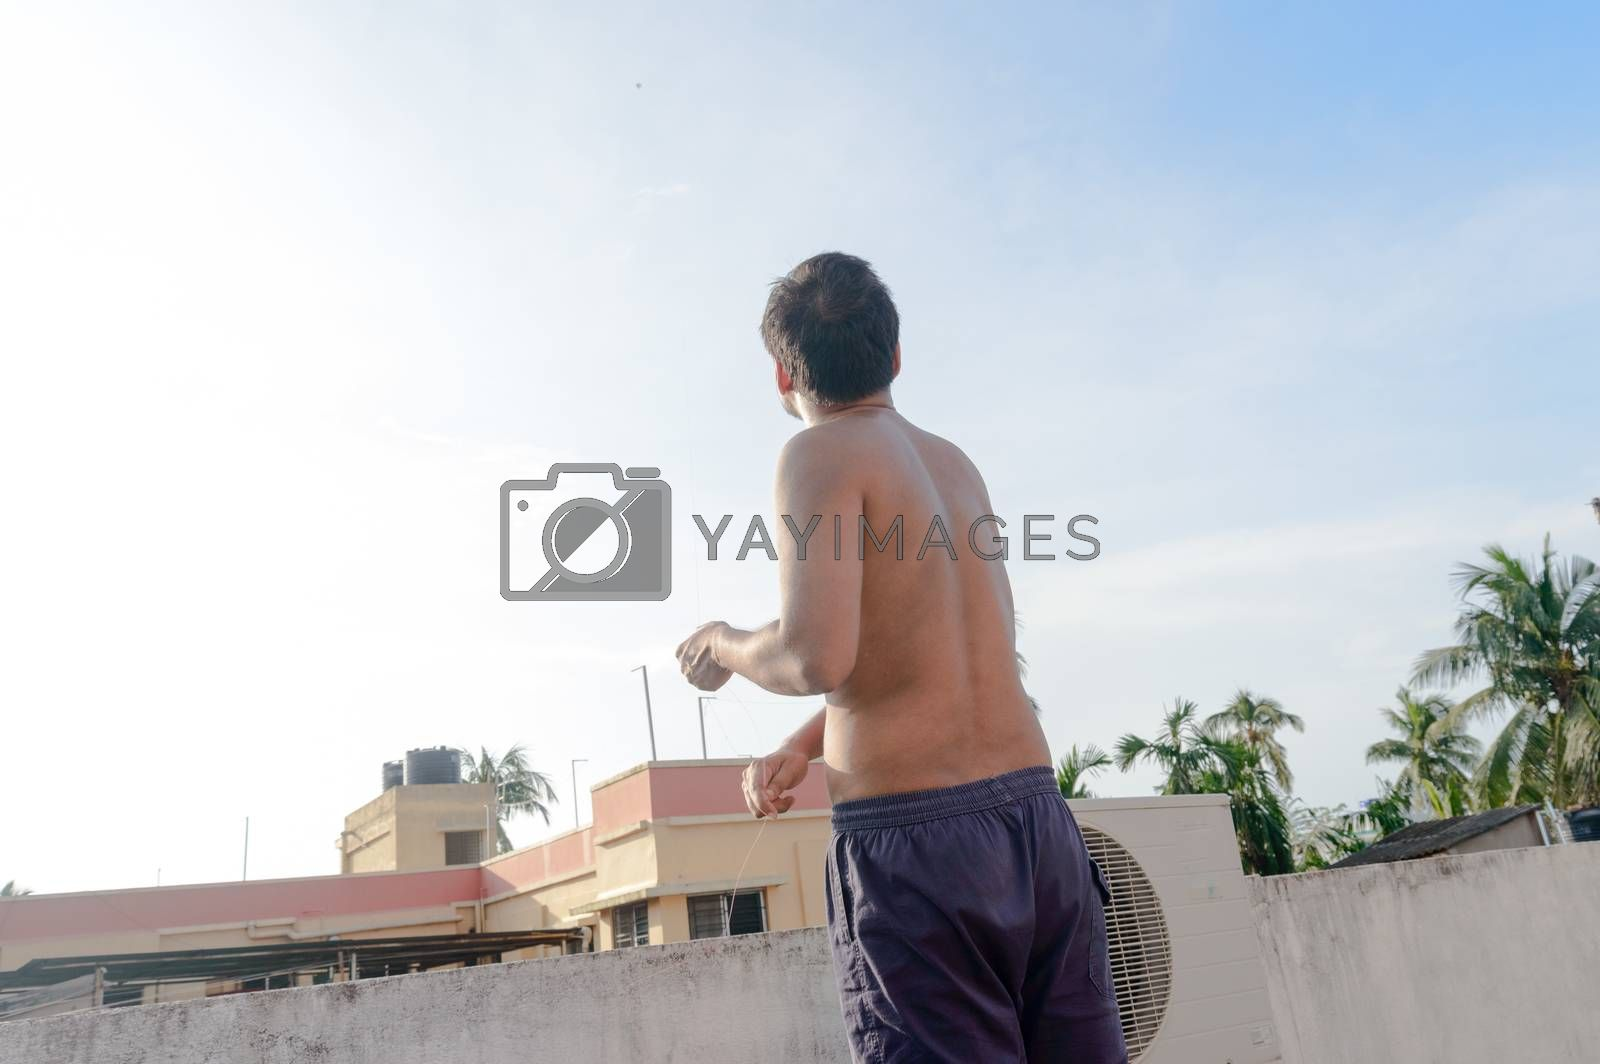 A man flying Kite in the sky. Kites flying picture with blue sky and white clouds. Photography in the eve of Vishwakarma Puja in Kolkata.